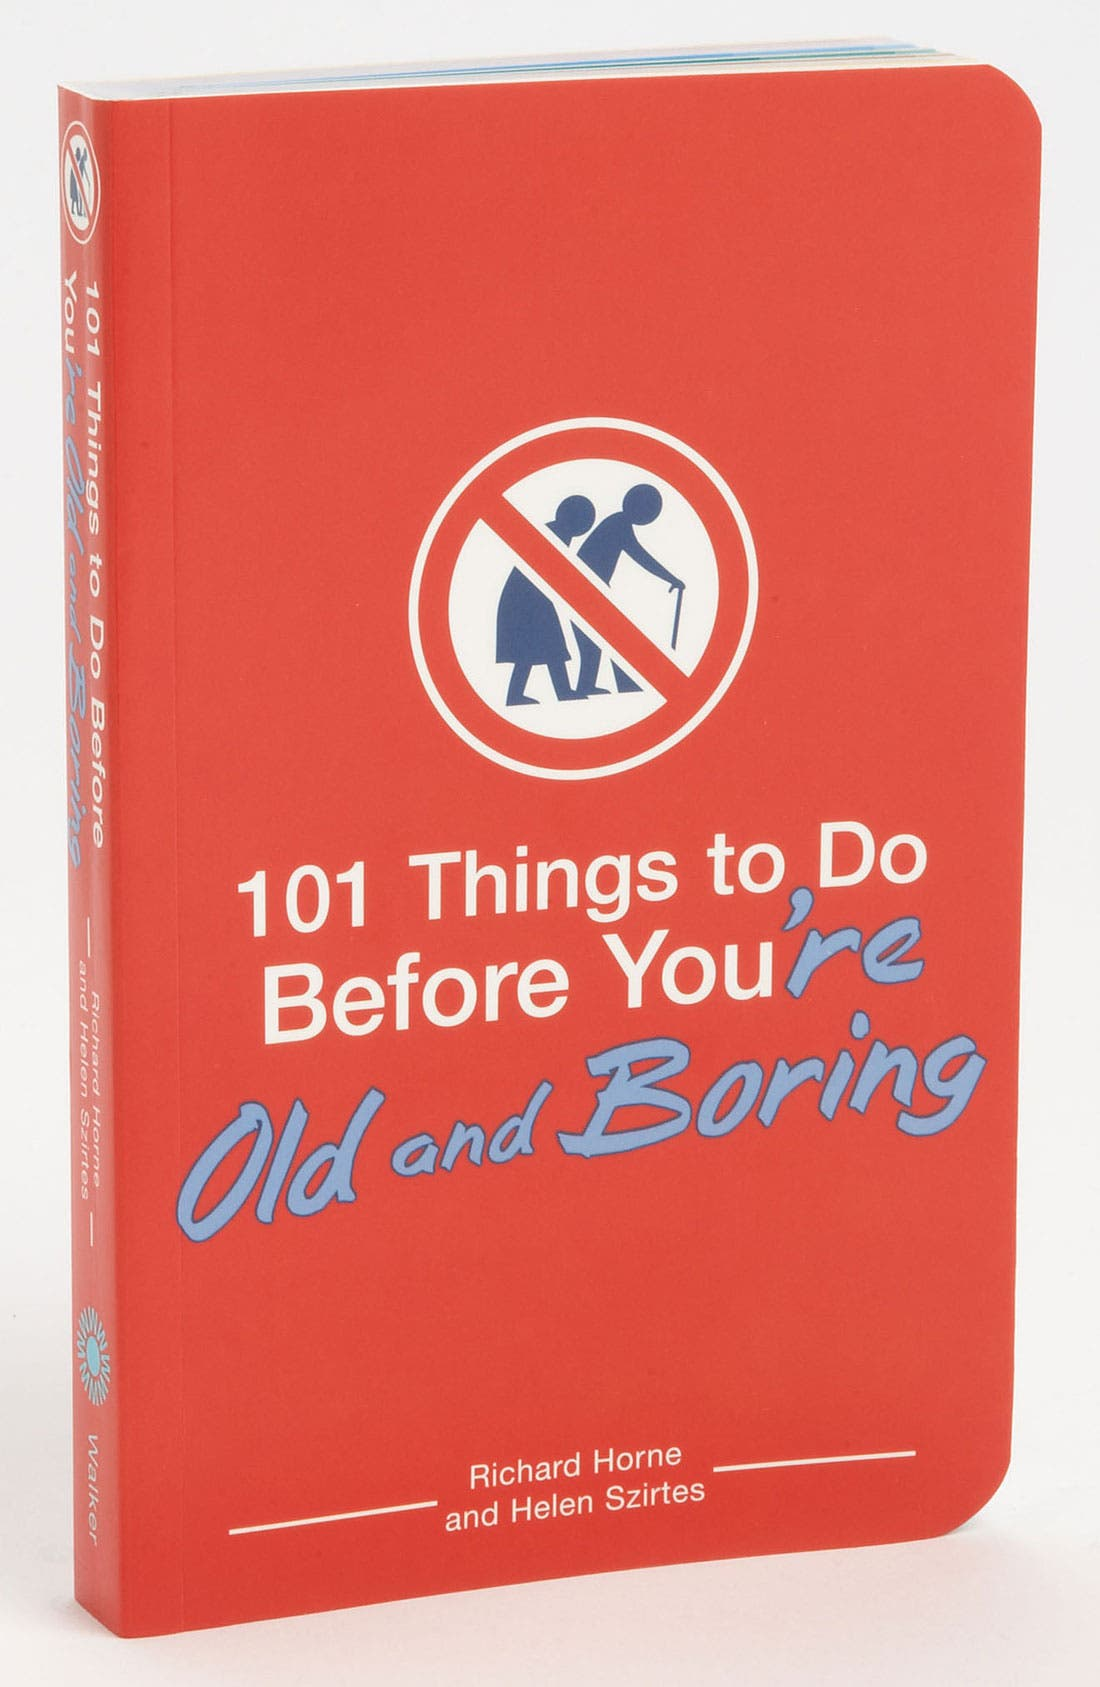 Alternate Image 1 Selected - Richard Horne & Helen Szirtes '101 Things to Do Before You're Old & Boring' Book